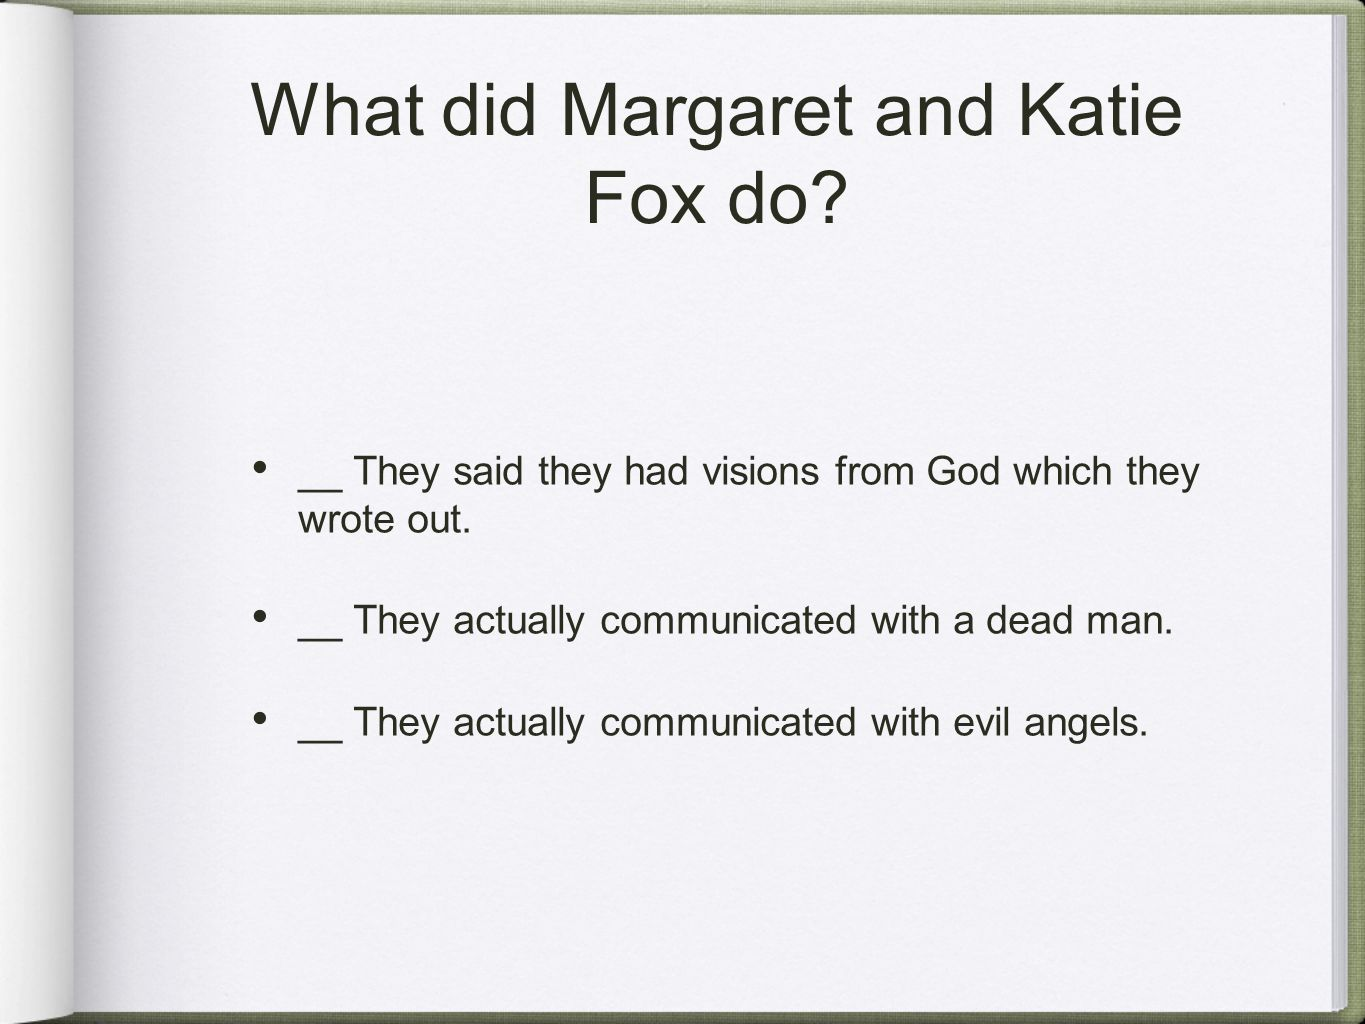 What did Margaret and Katie Fox do? __ They said they had visions from God which they wrote out. __ They actually communicated with a dead man. __ The